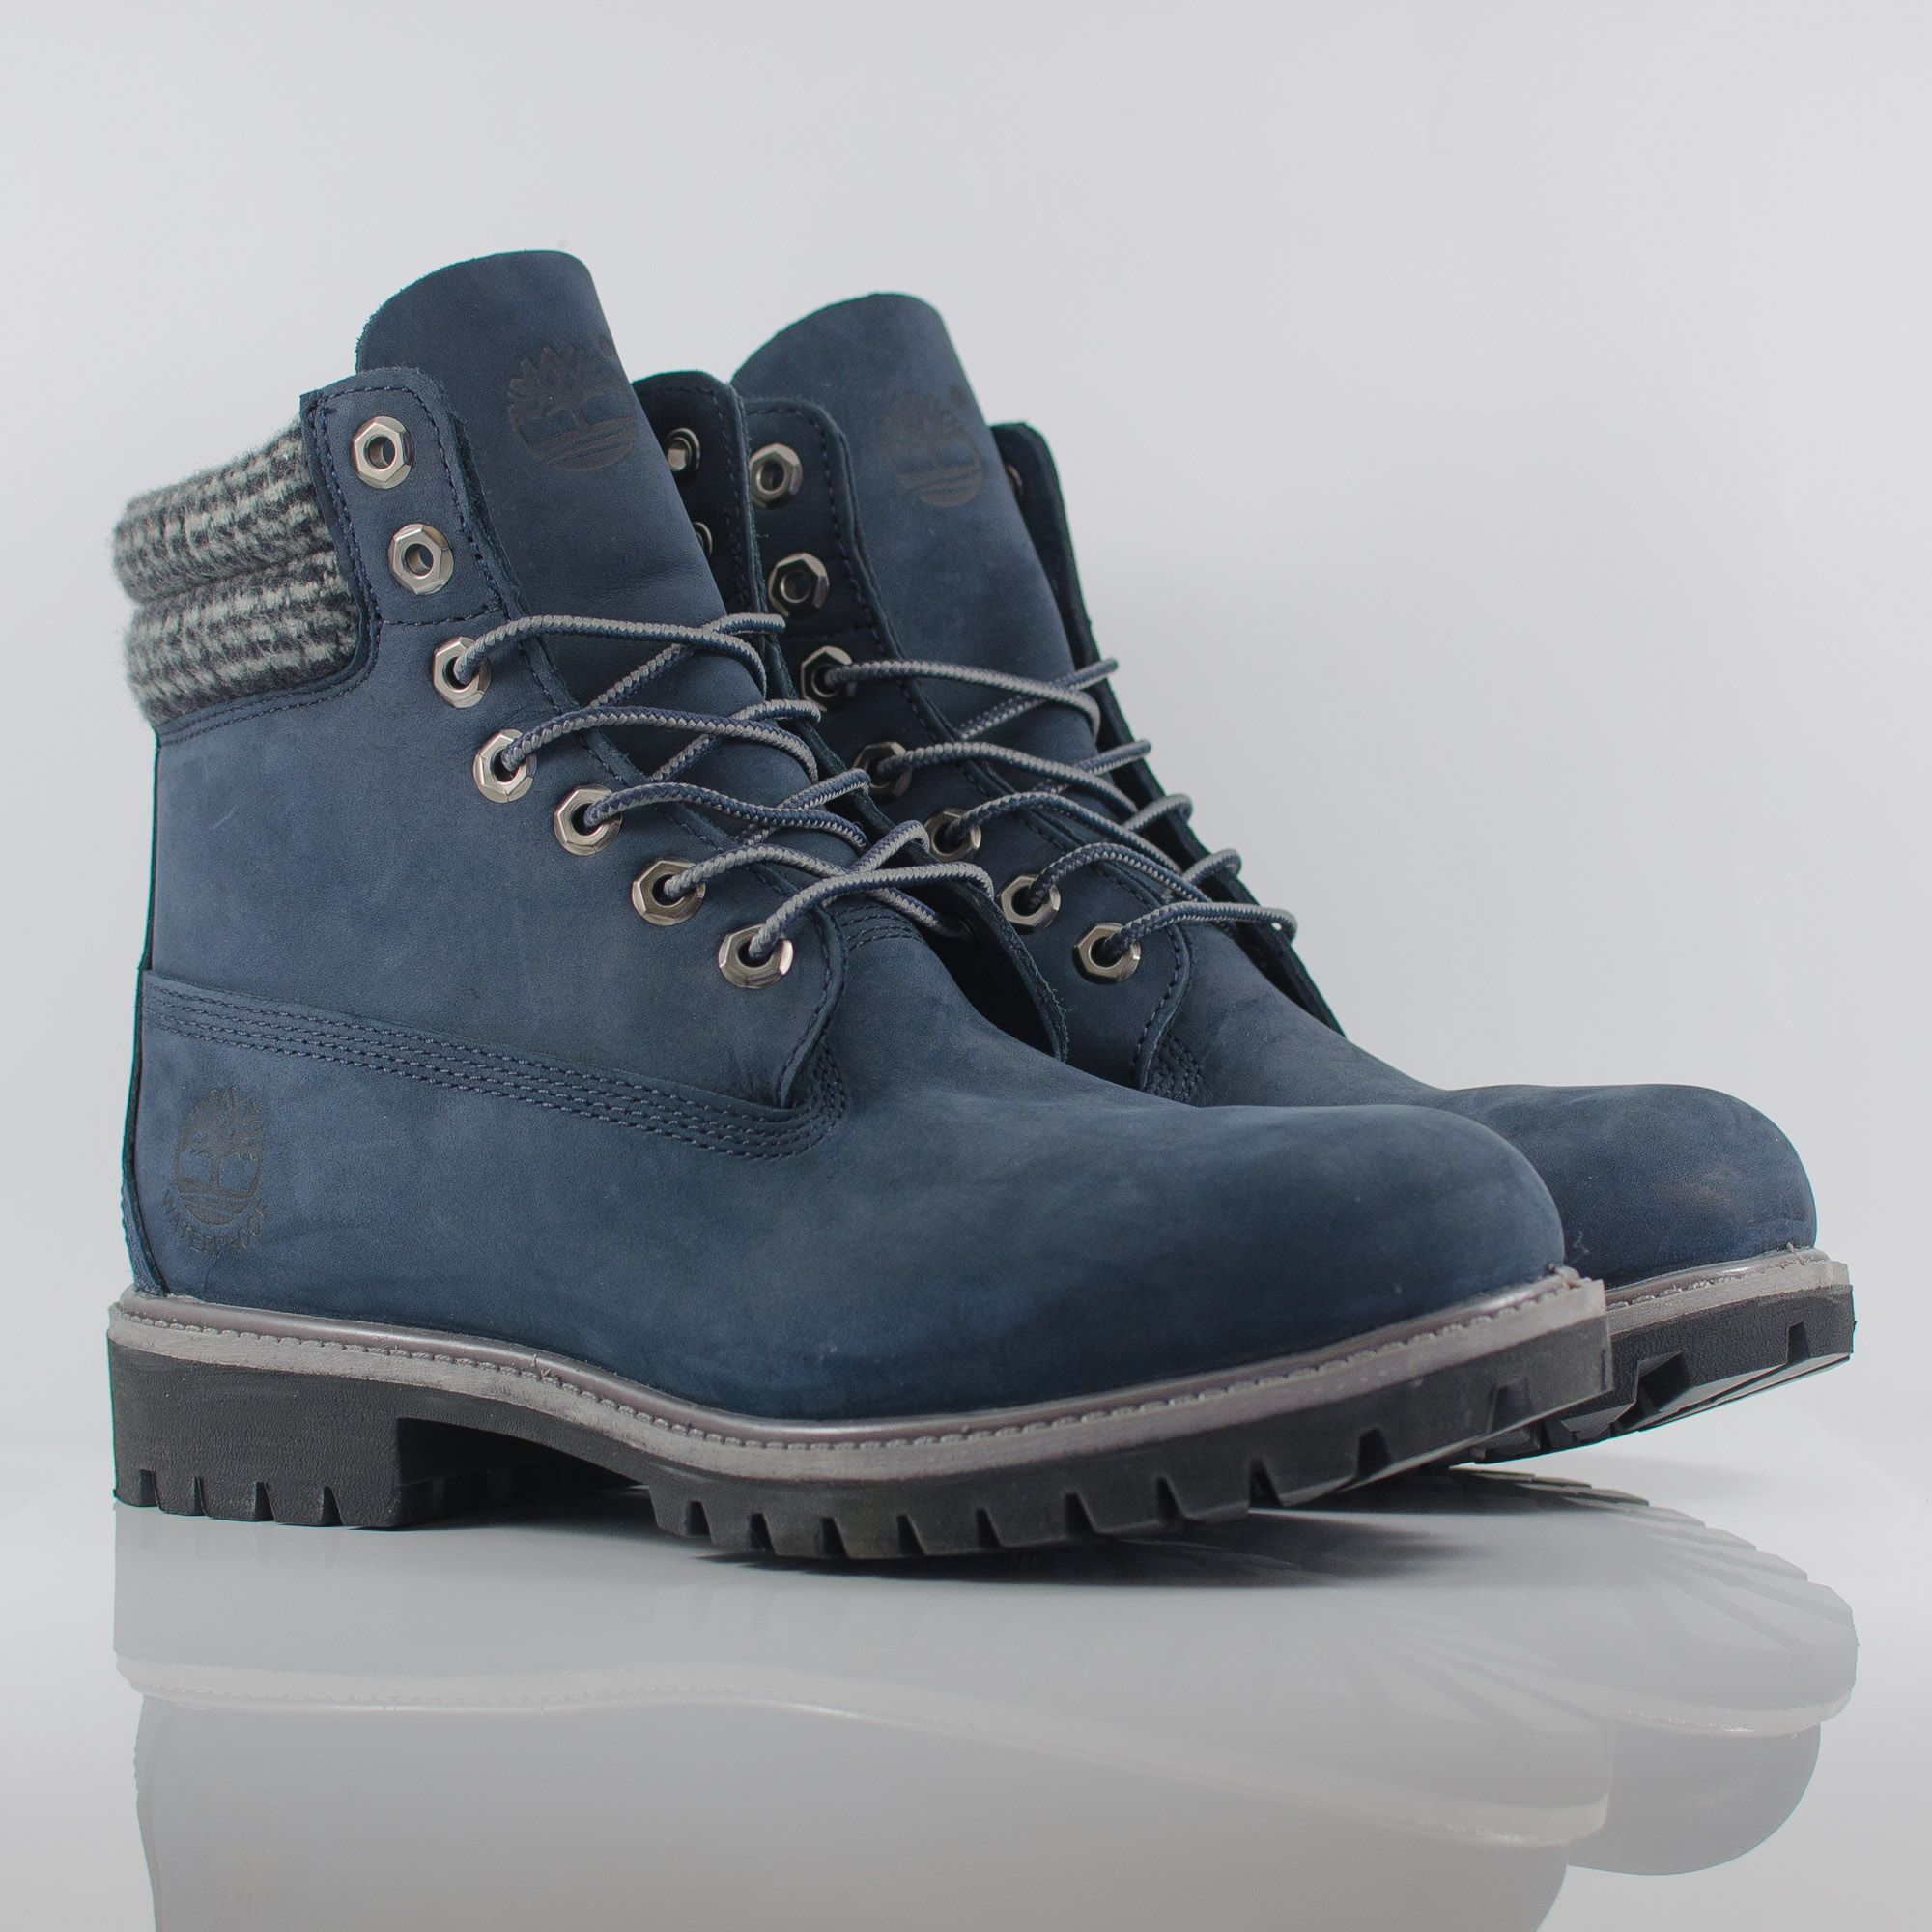 Timberland Blue Boots